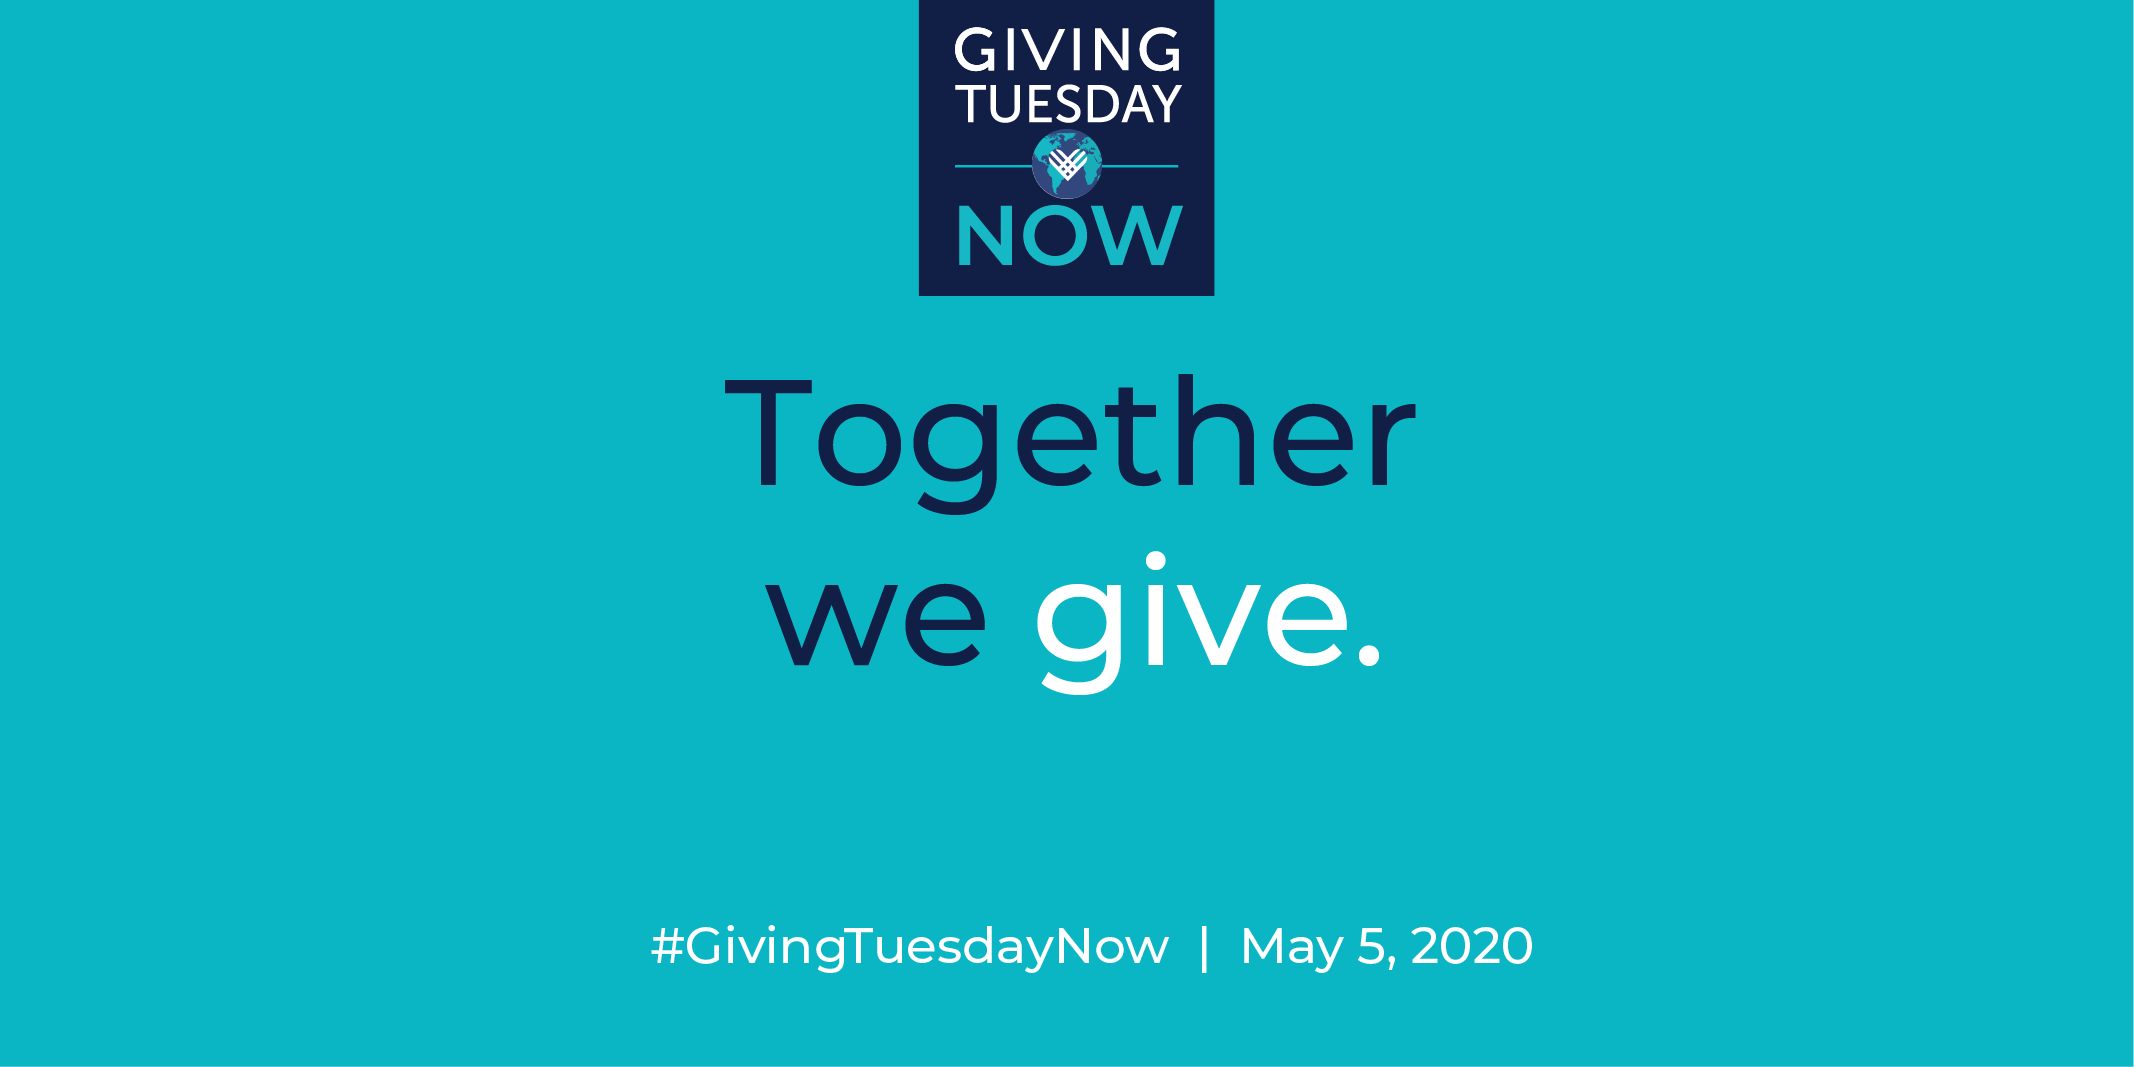 "Text ""Giving Tuesday NOW, Together we give. #GivingTuesdayNow, May 5, 2020"" on blue background"